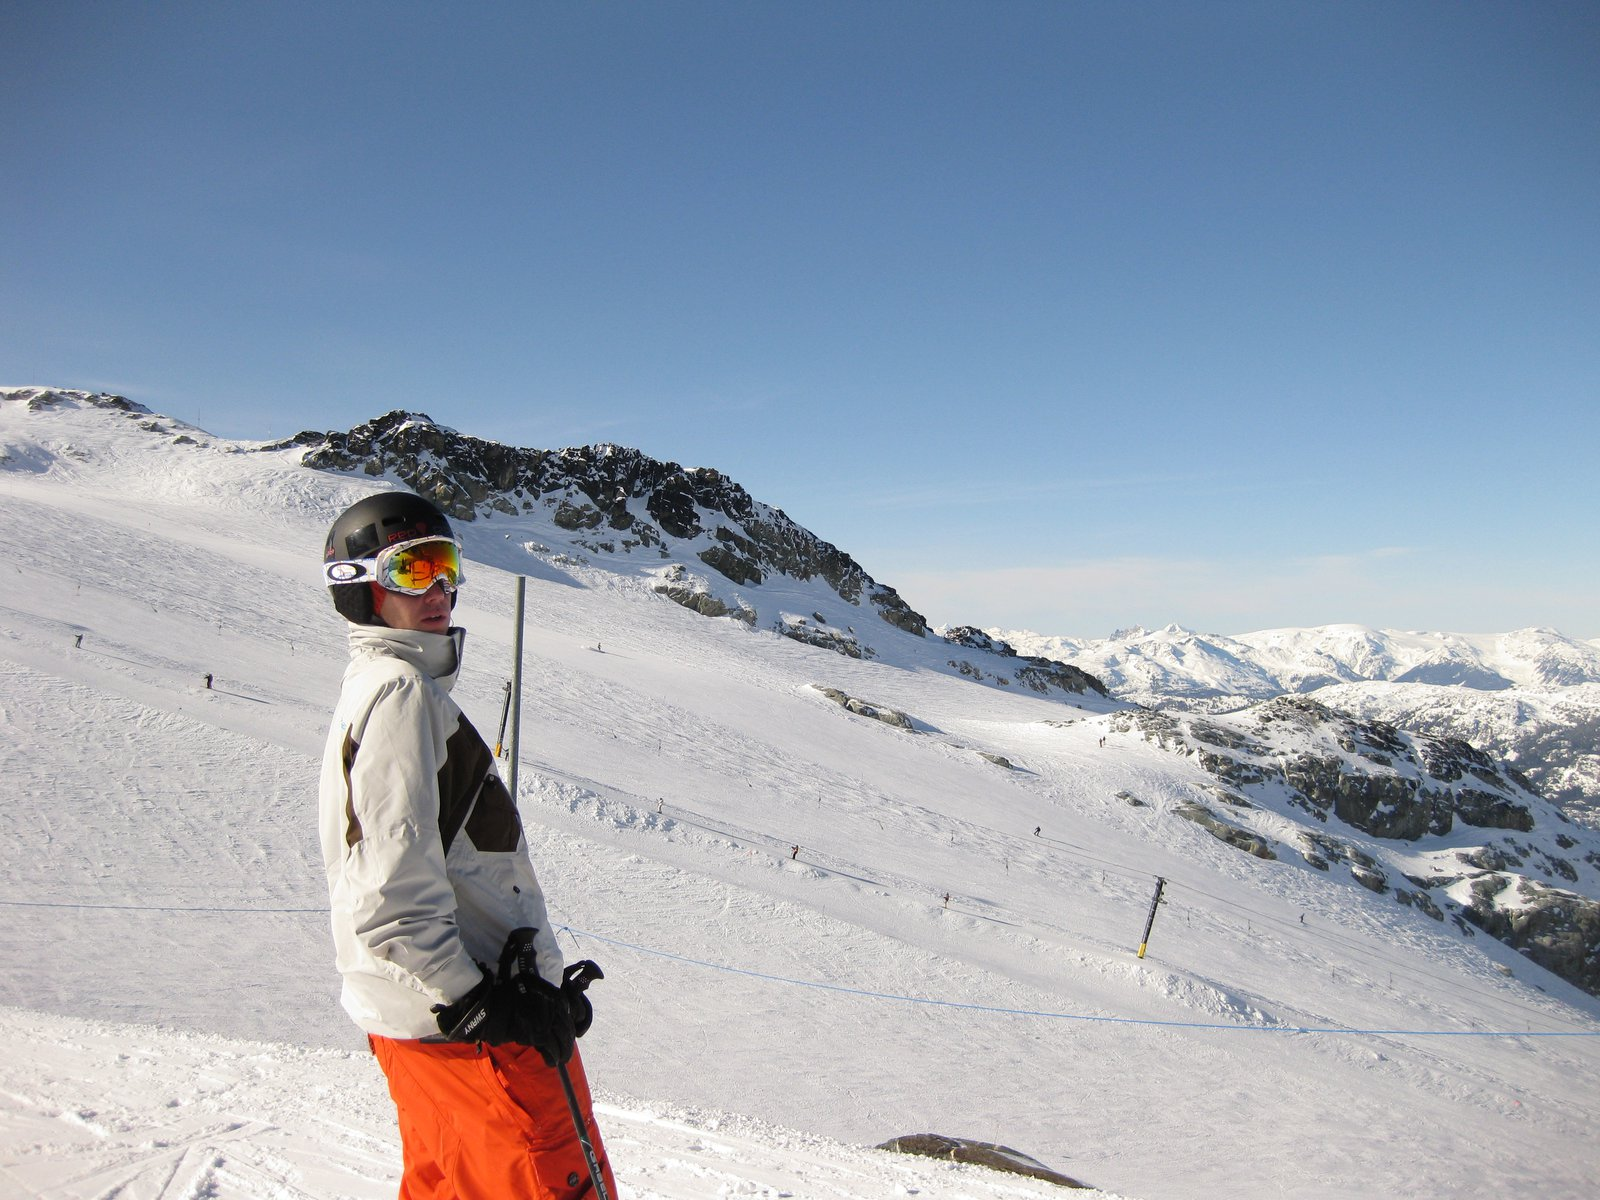 Some Where in Blackcomb